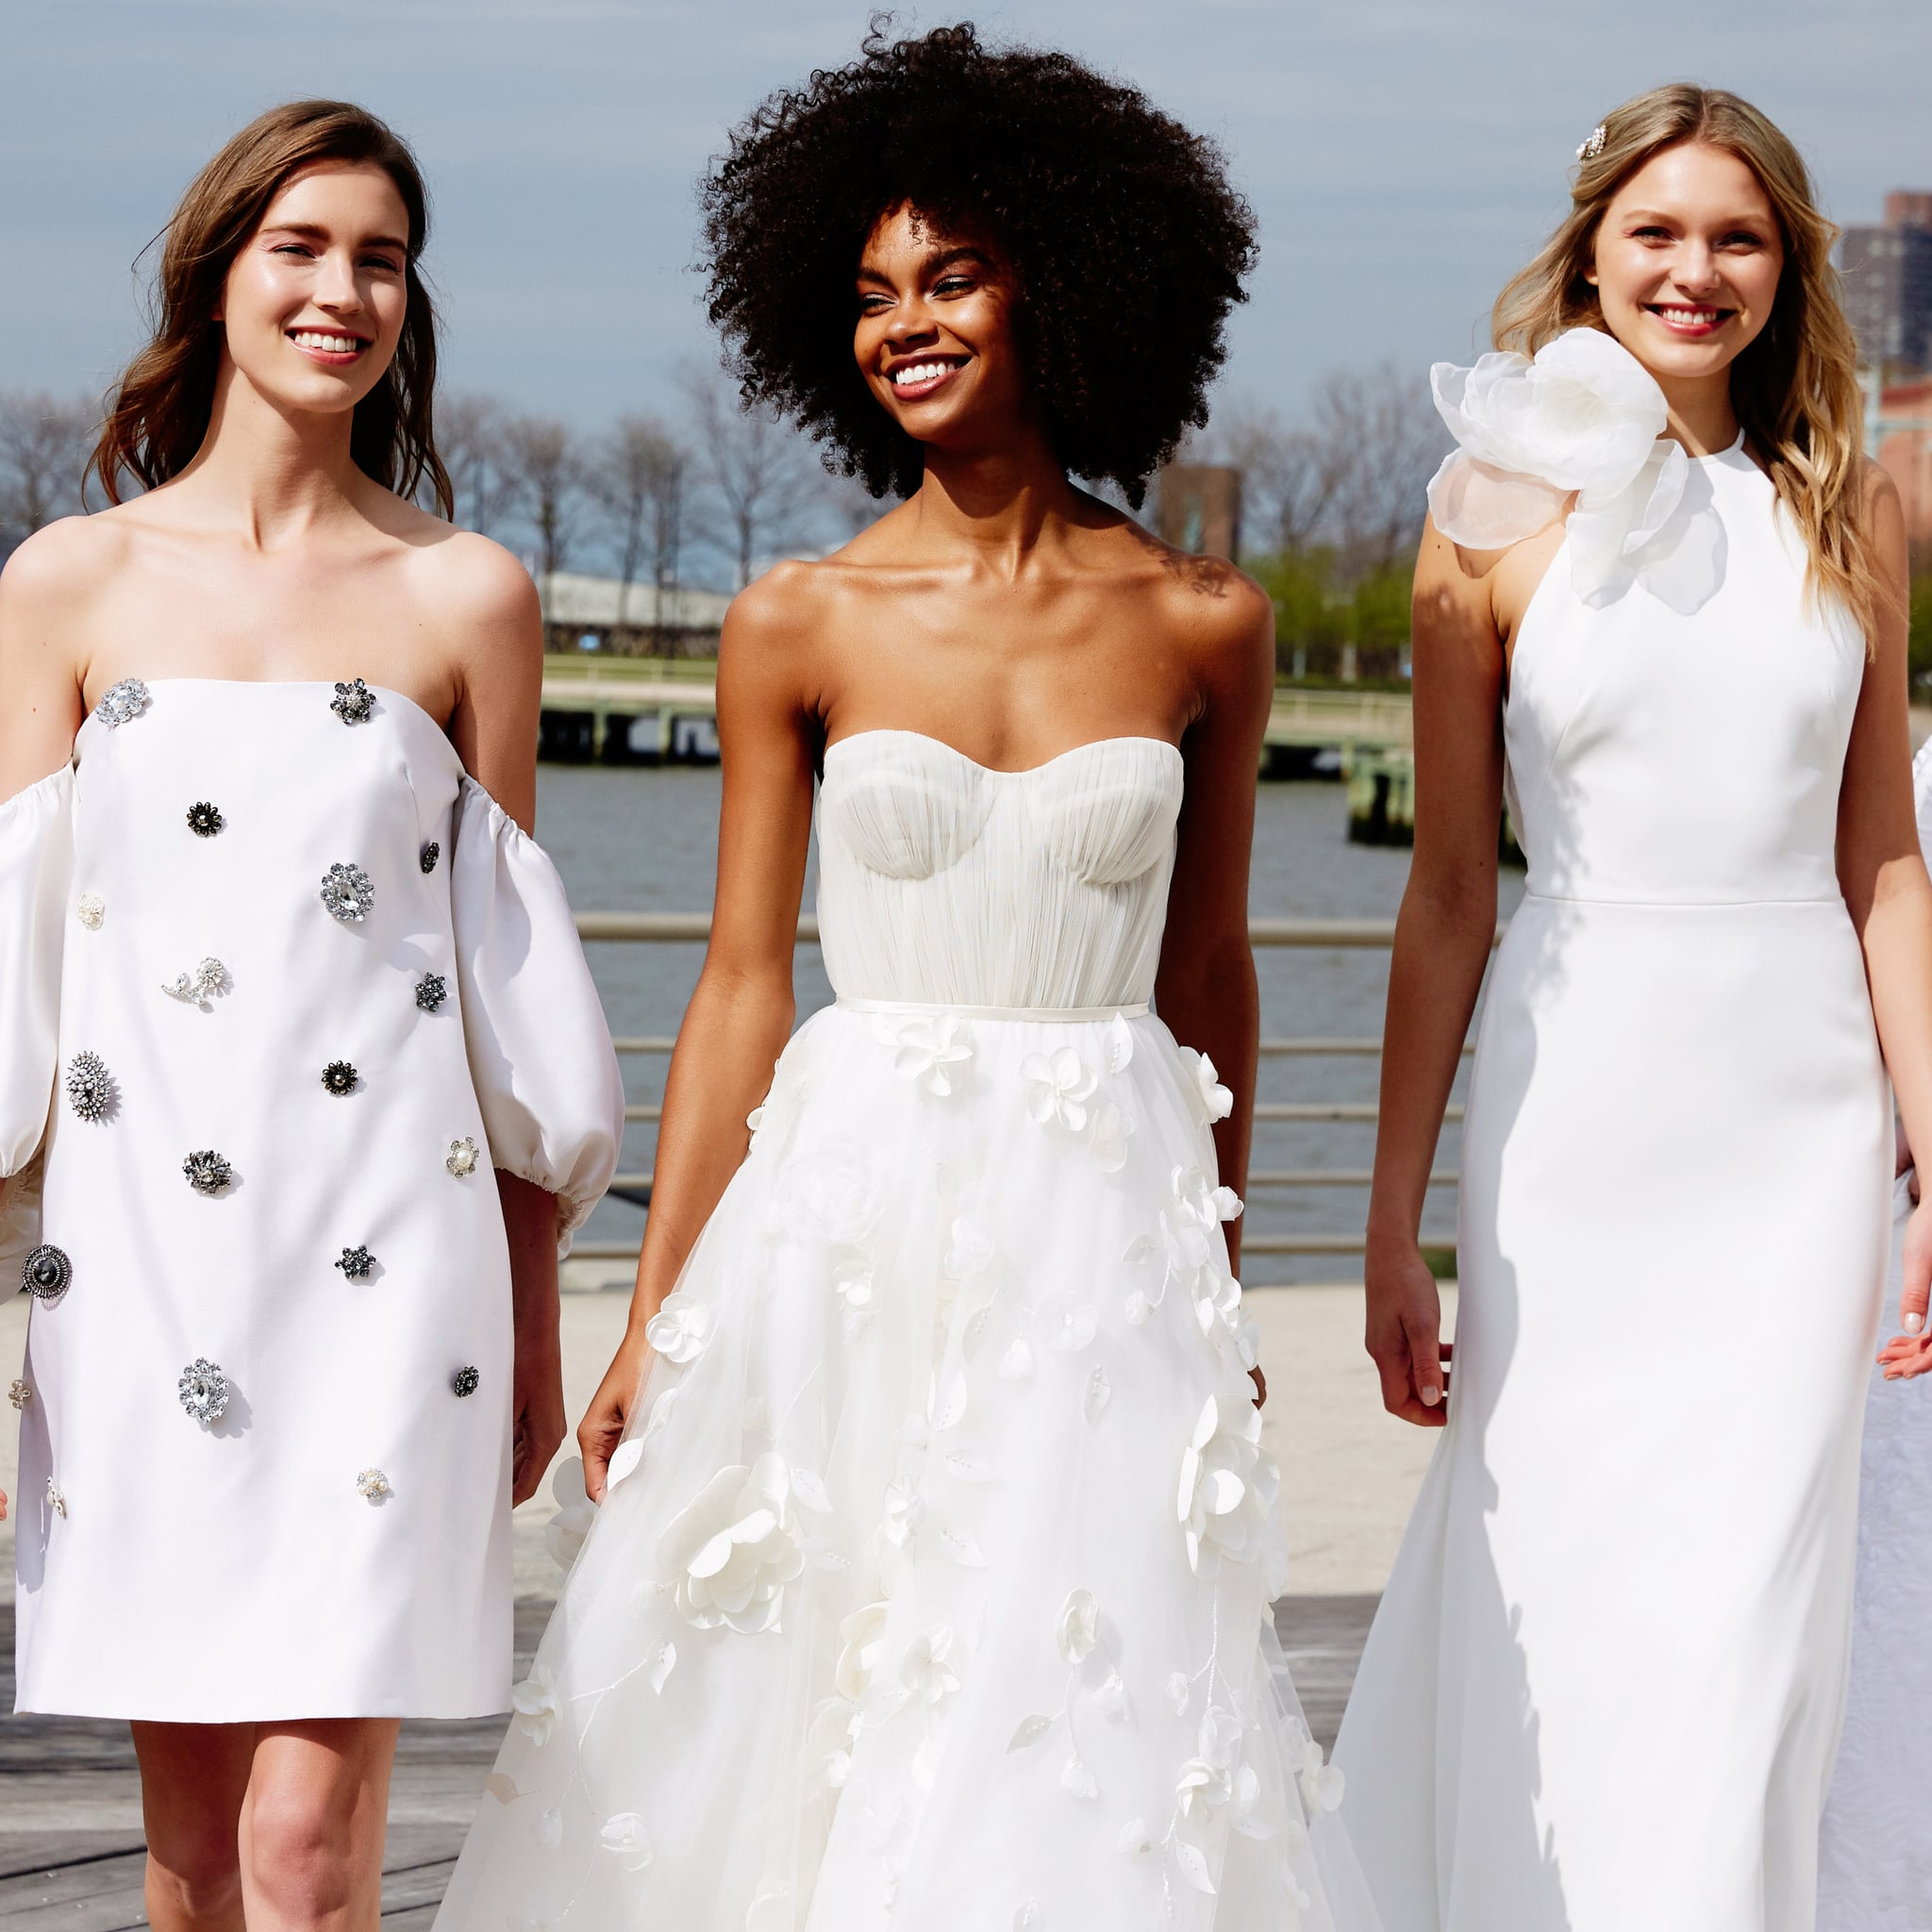 2020 Wedding Dress Trends.Bridal Trends Spring 2020 Popsugar Fashion